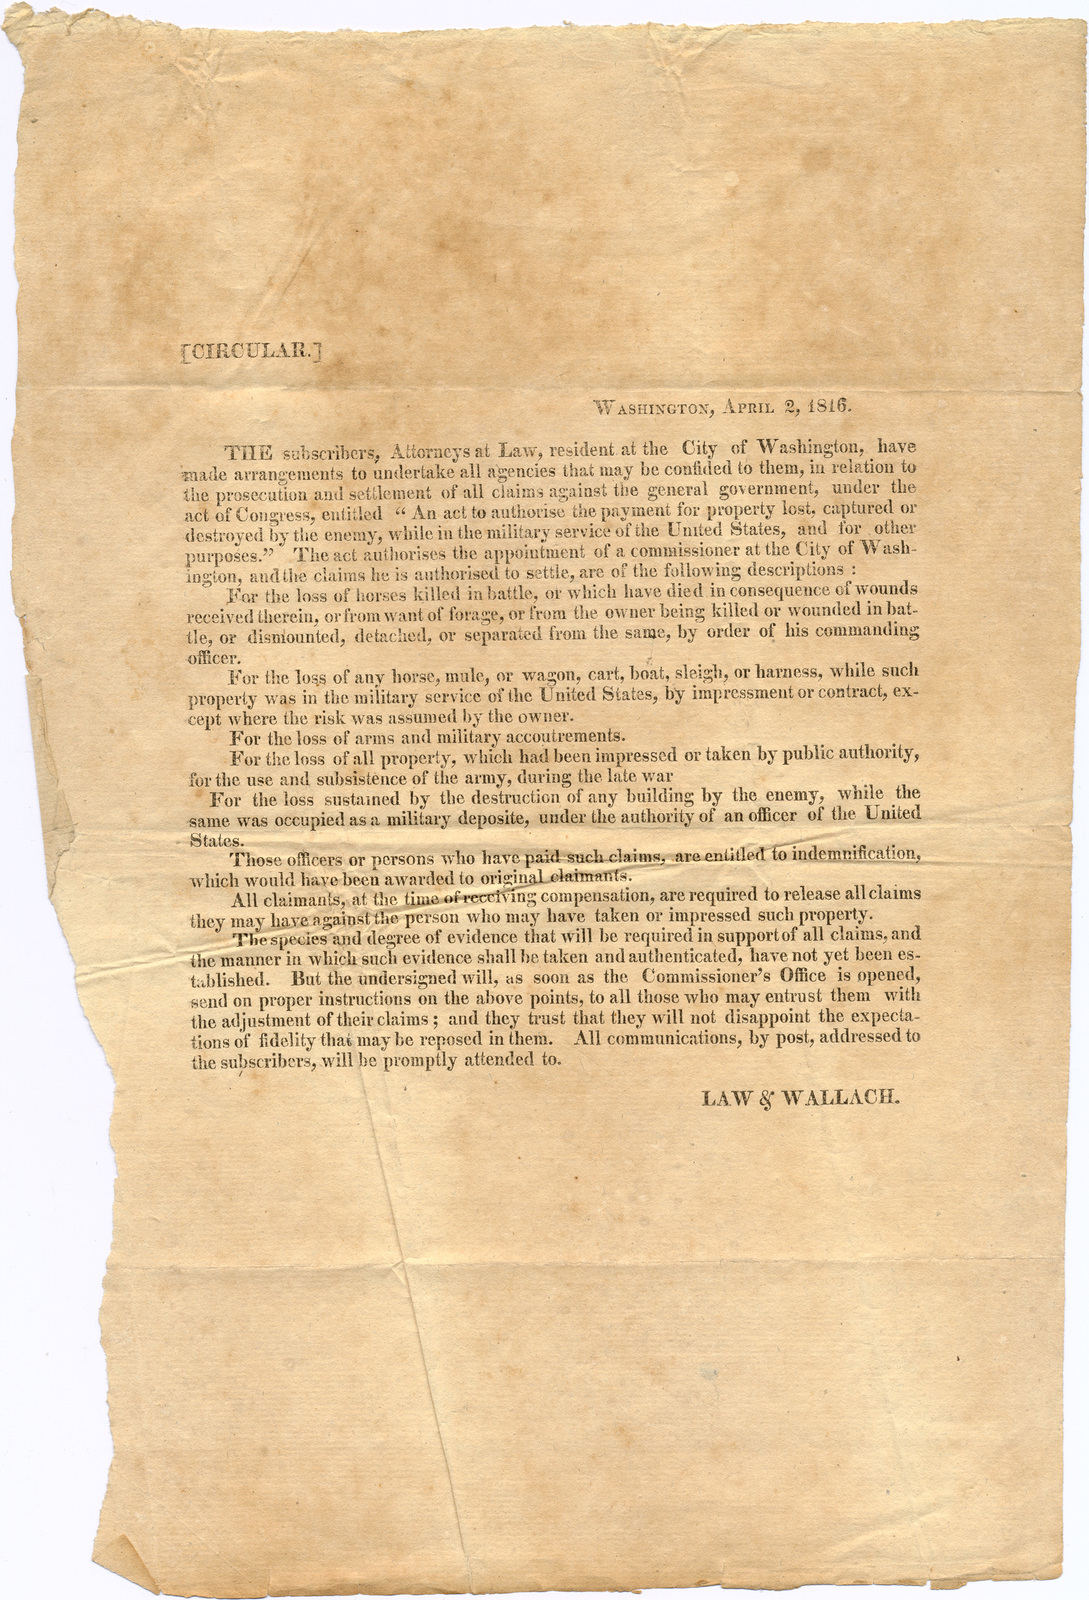 Advertising circular noting that cases will be accepted against the government for loss of any property due to military action